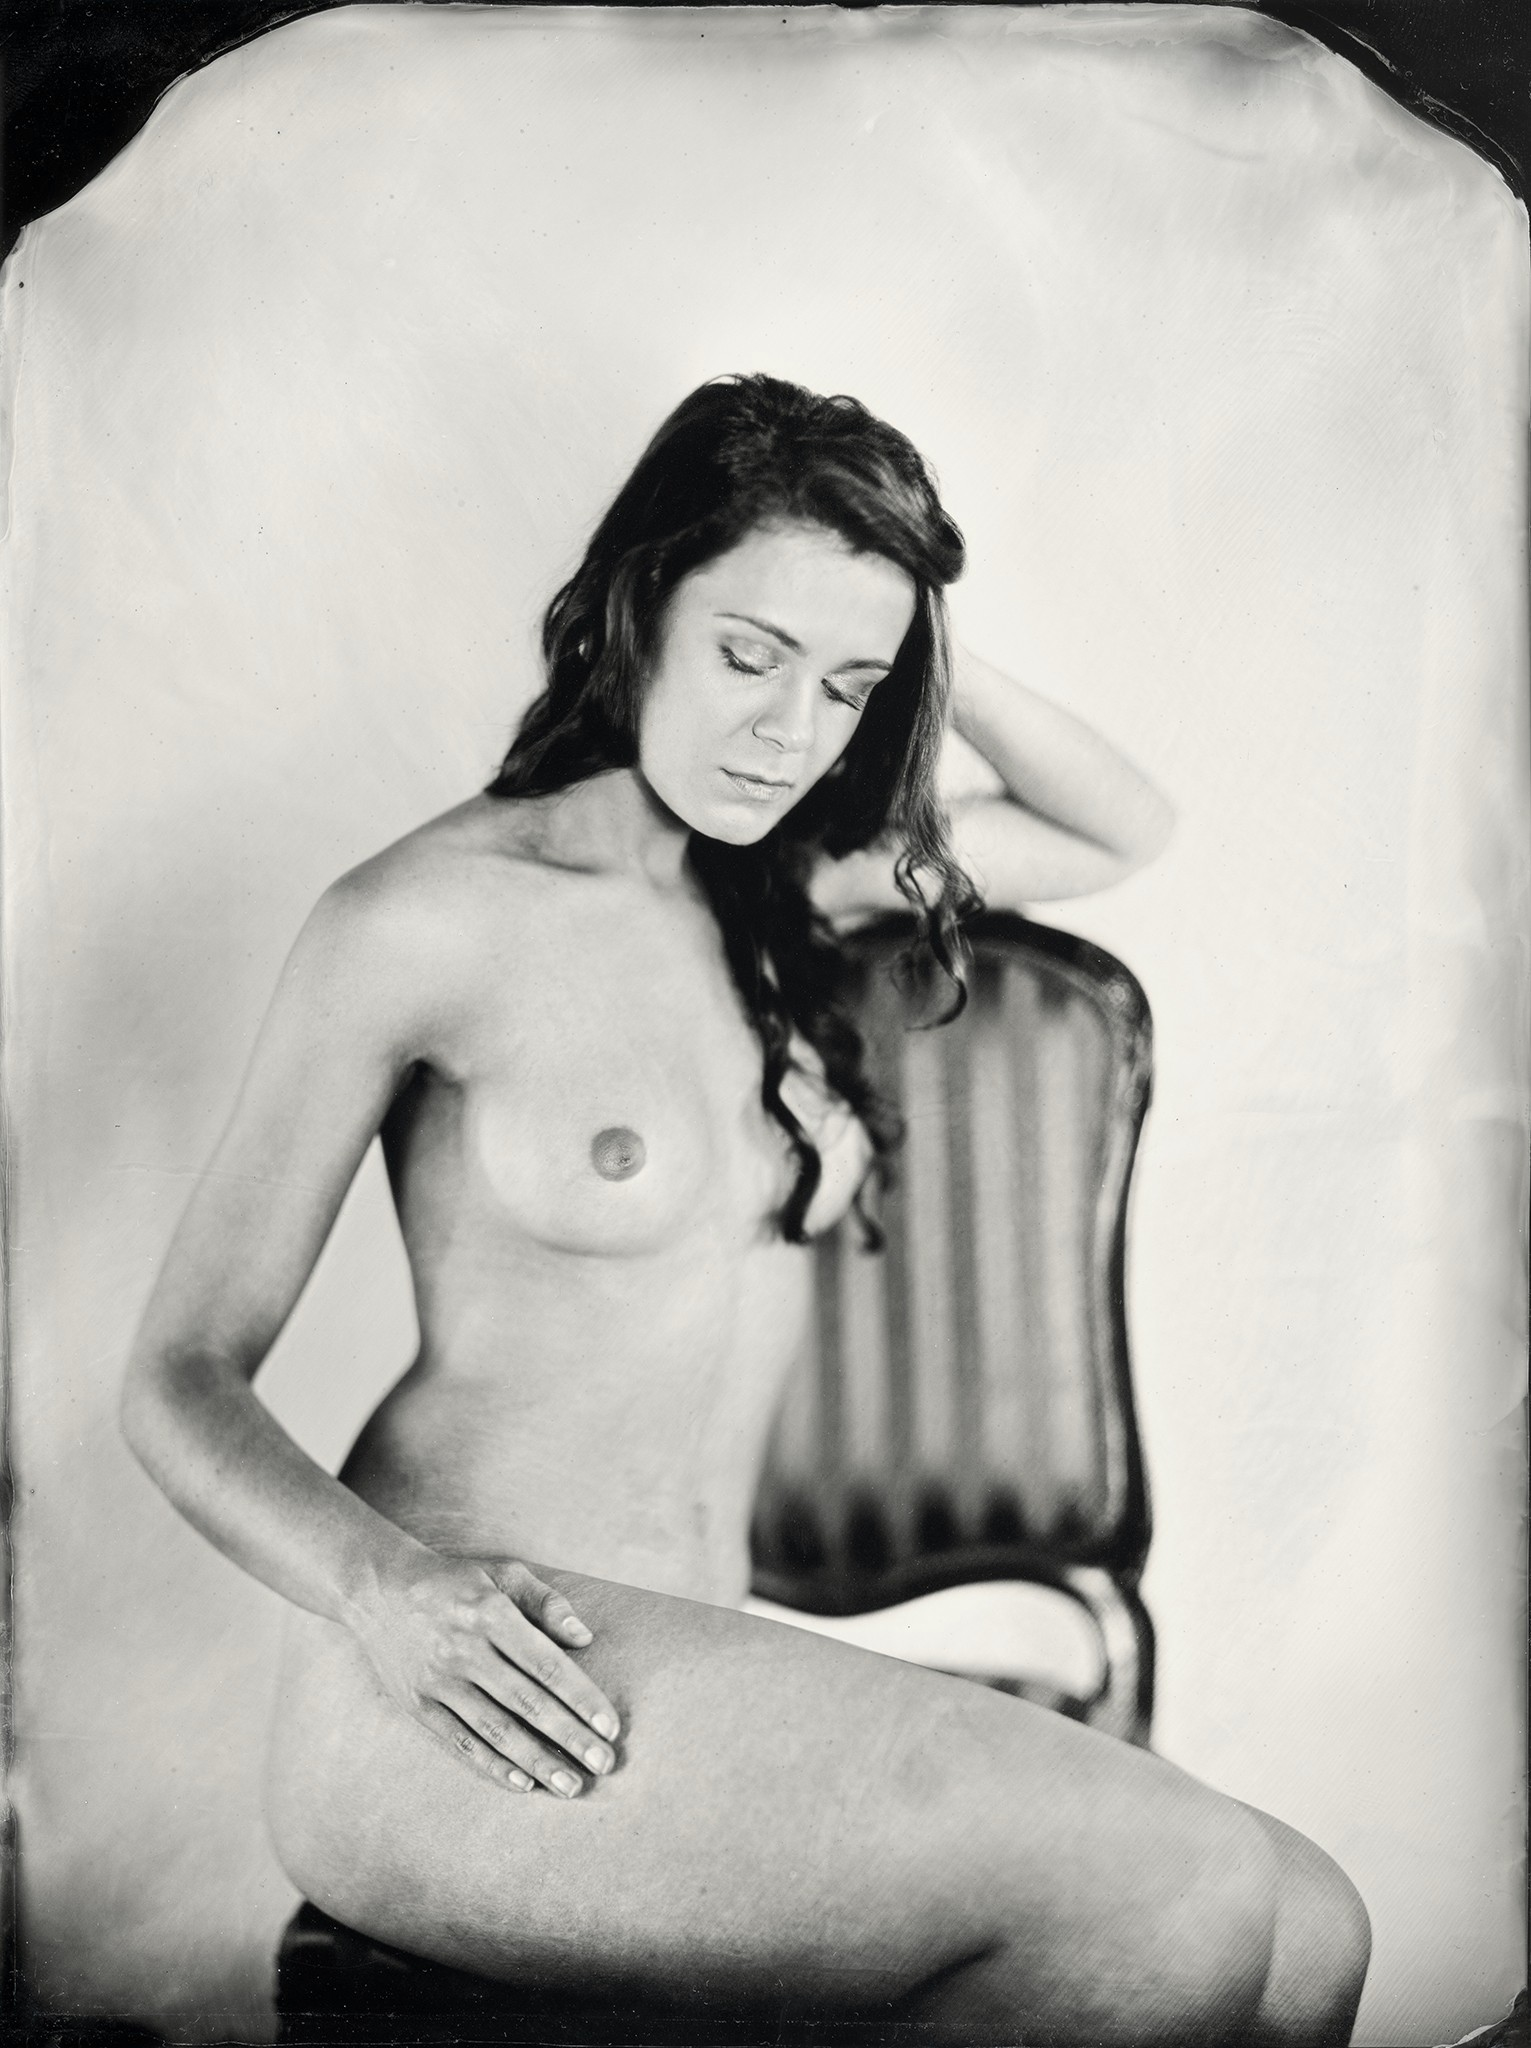 Mokry kolodion - Akt - Wet Plate Collodion Nude